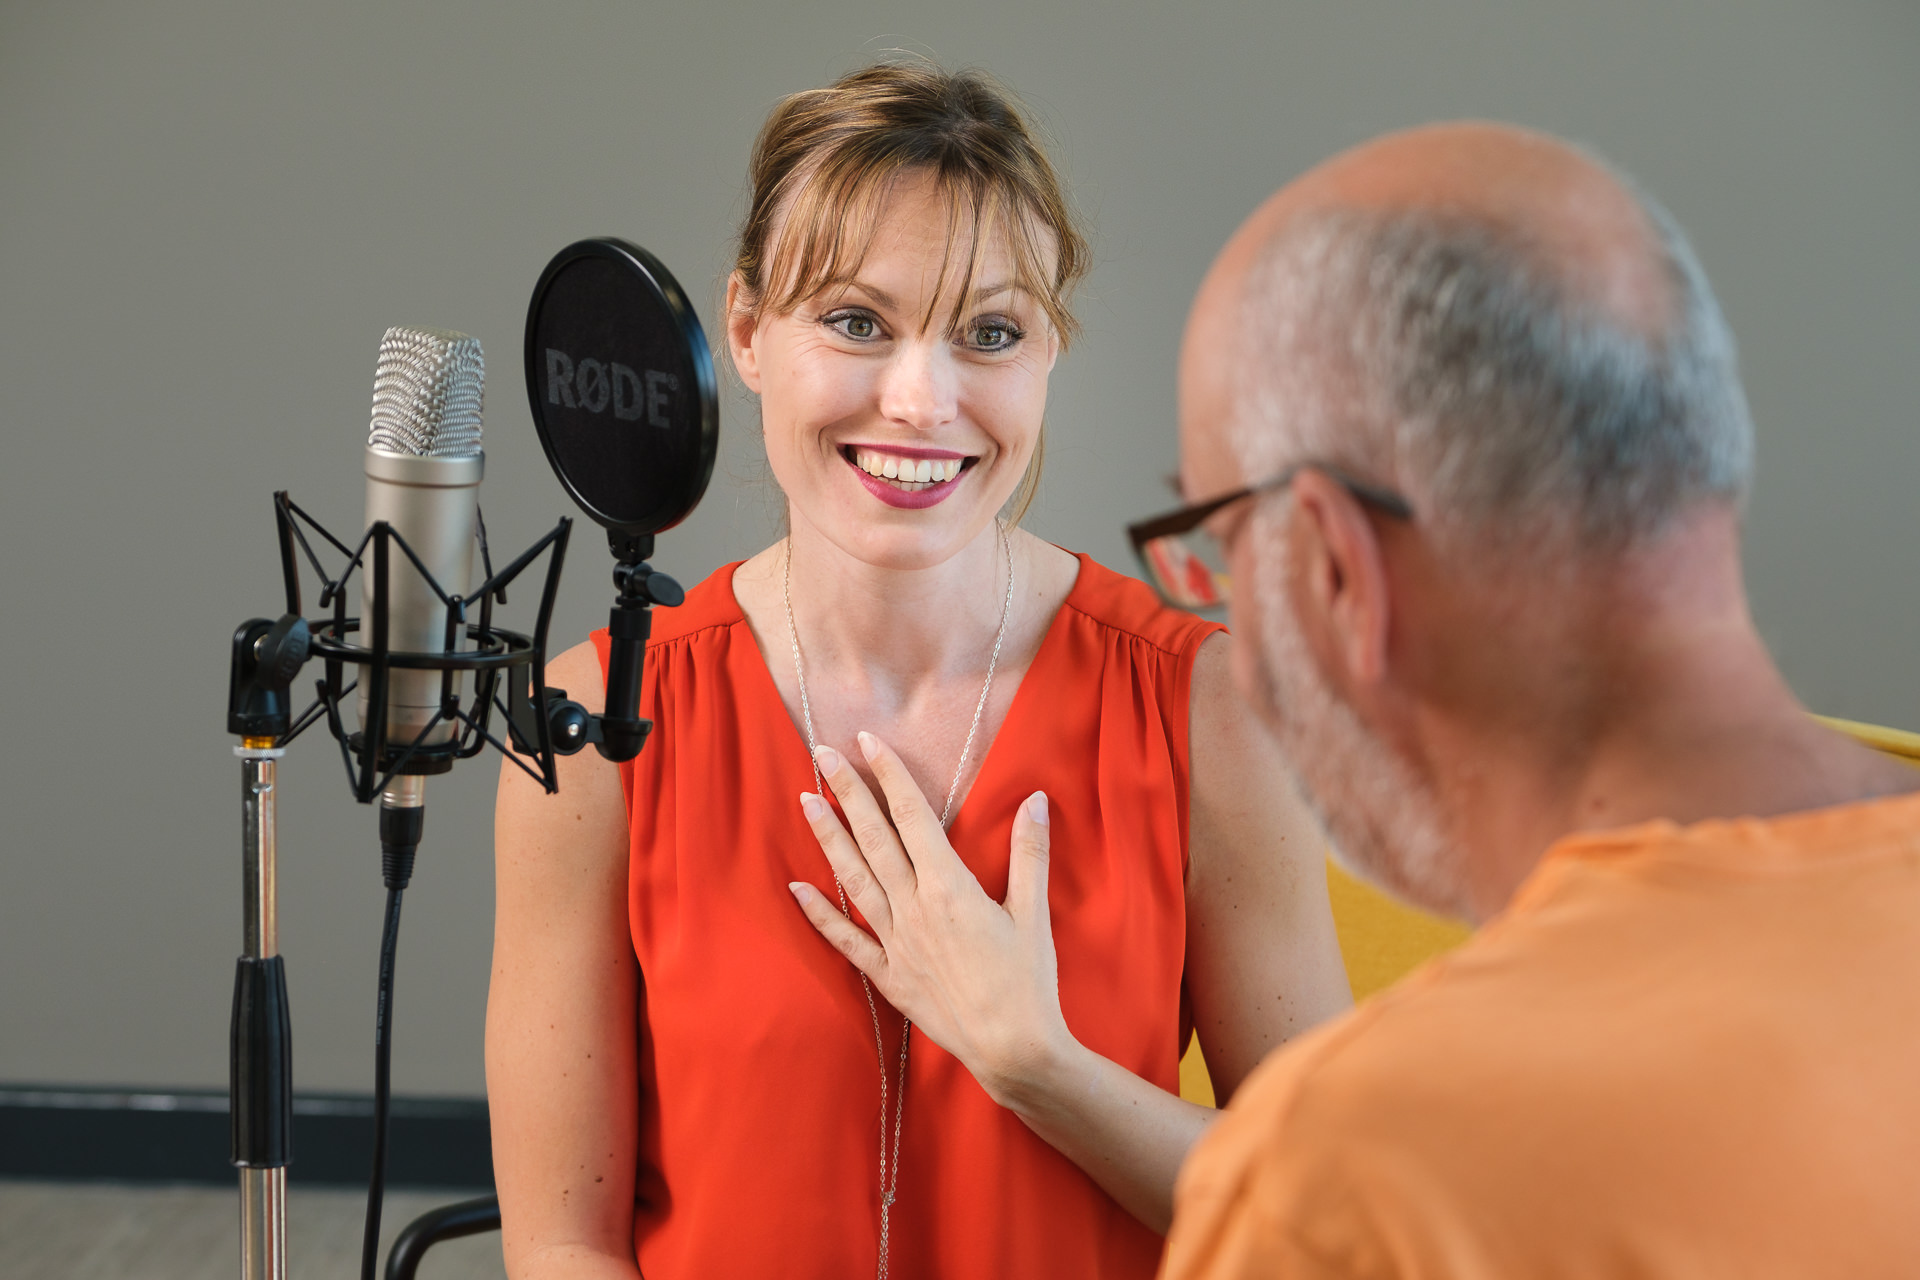 Business branding photography session with female podcast host wearing a bright orange outfit talking to a guest